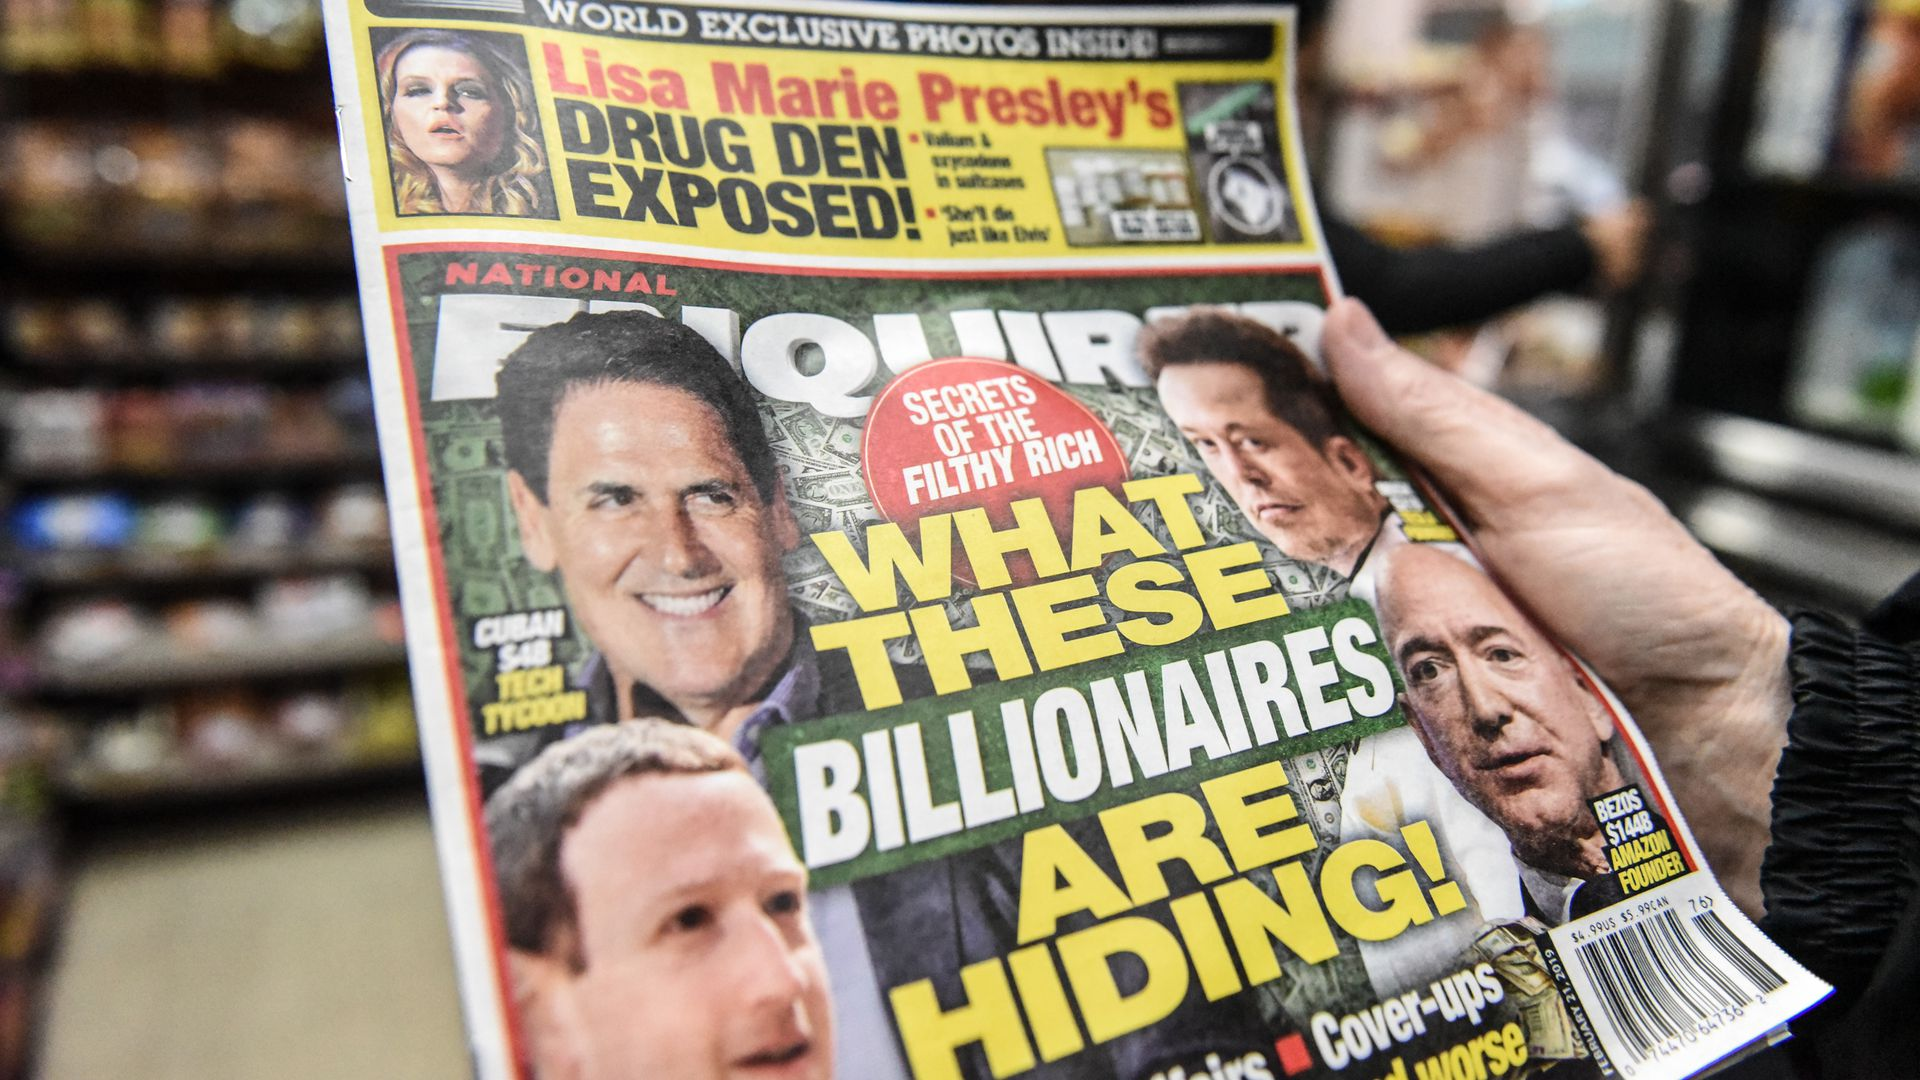 In this image, a copy of the National Enquirer is held up close to the camera by an unseen person.